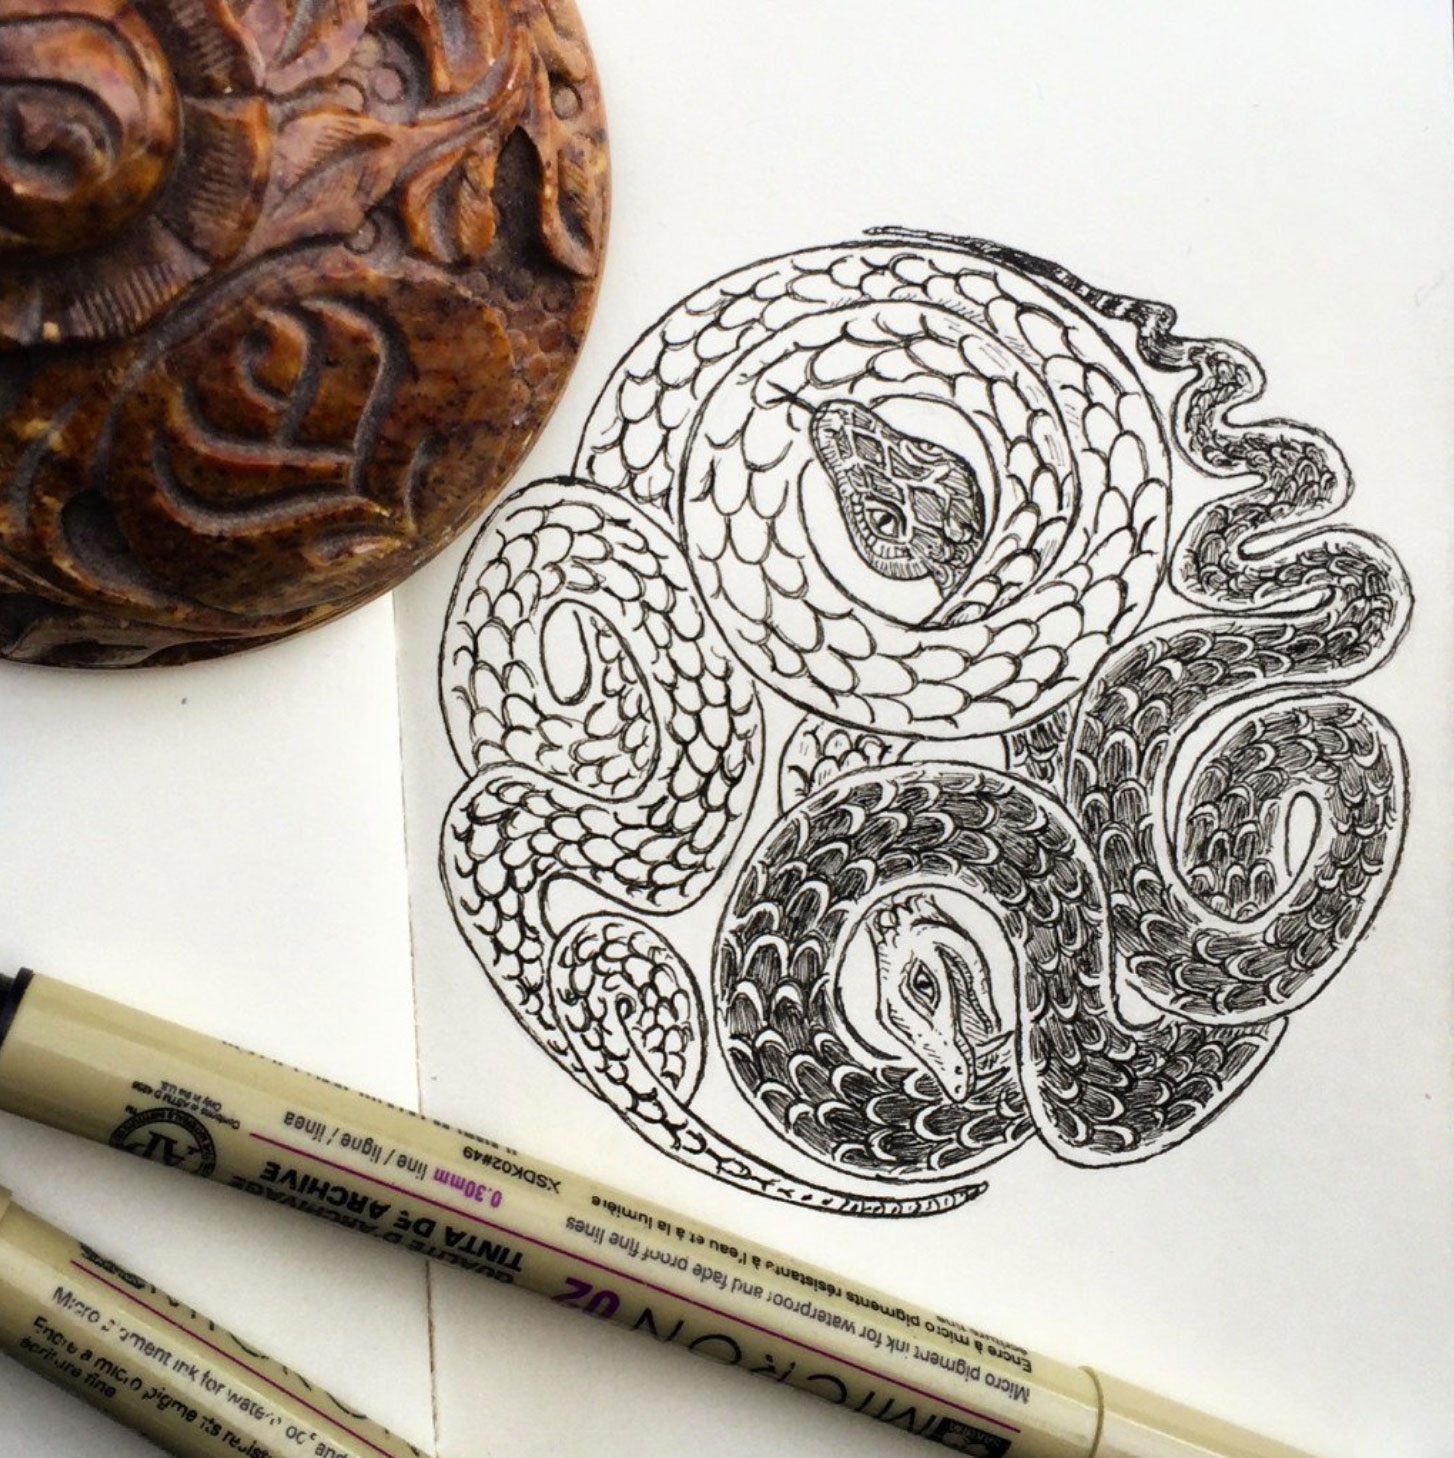 Yin Yang Drawing with Snakes